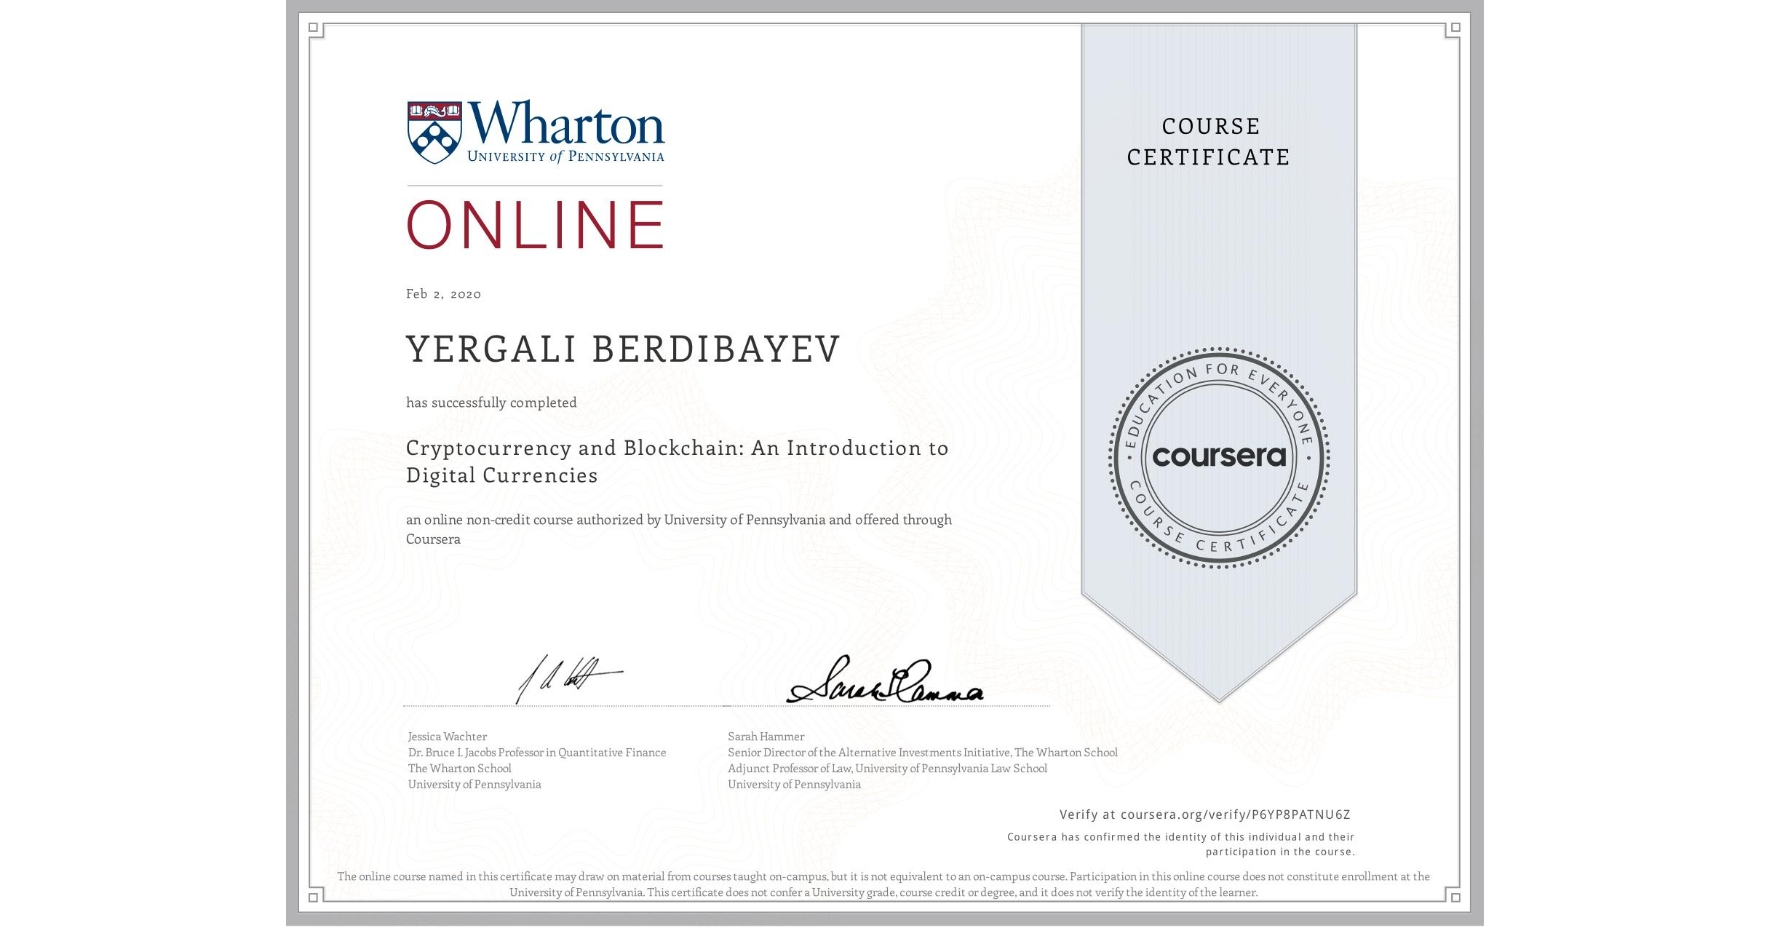 View certificate for Yergali Berdibayev, Cryptocurrency and Blockchain: An Introduction to Digital Currencies, an online non-credit course authorized by University of Pennsylvania and offered through Coursera